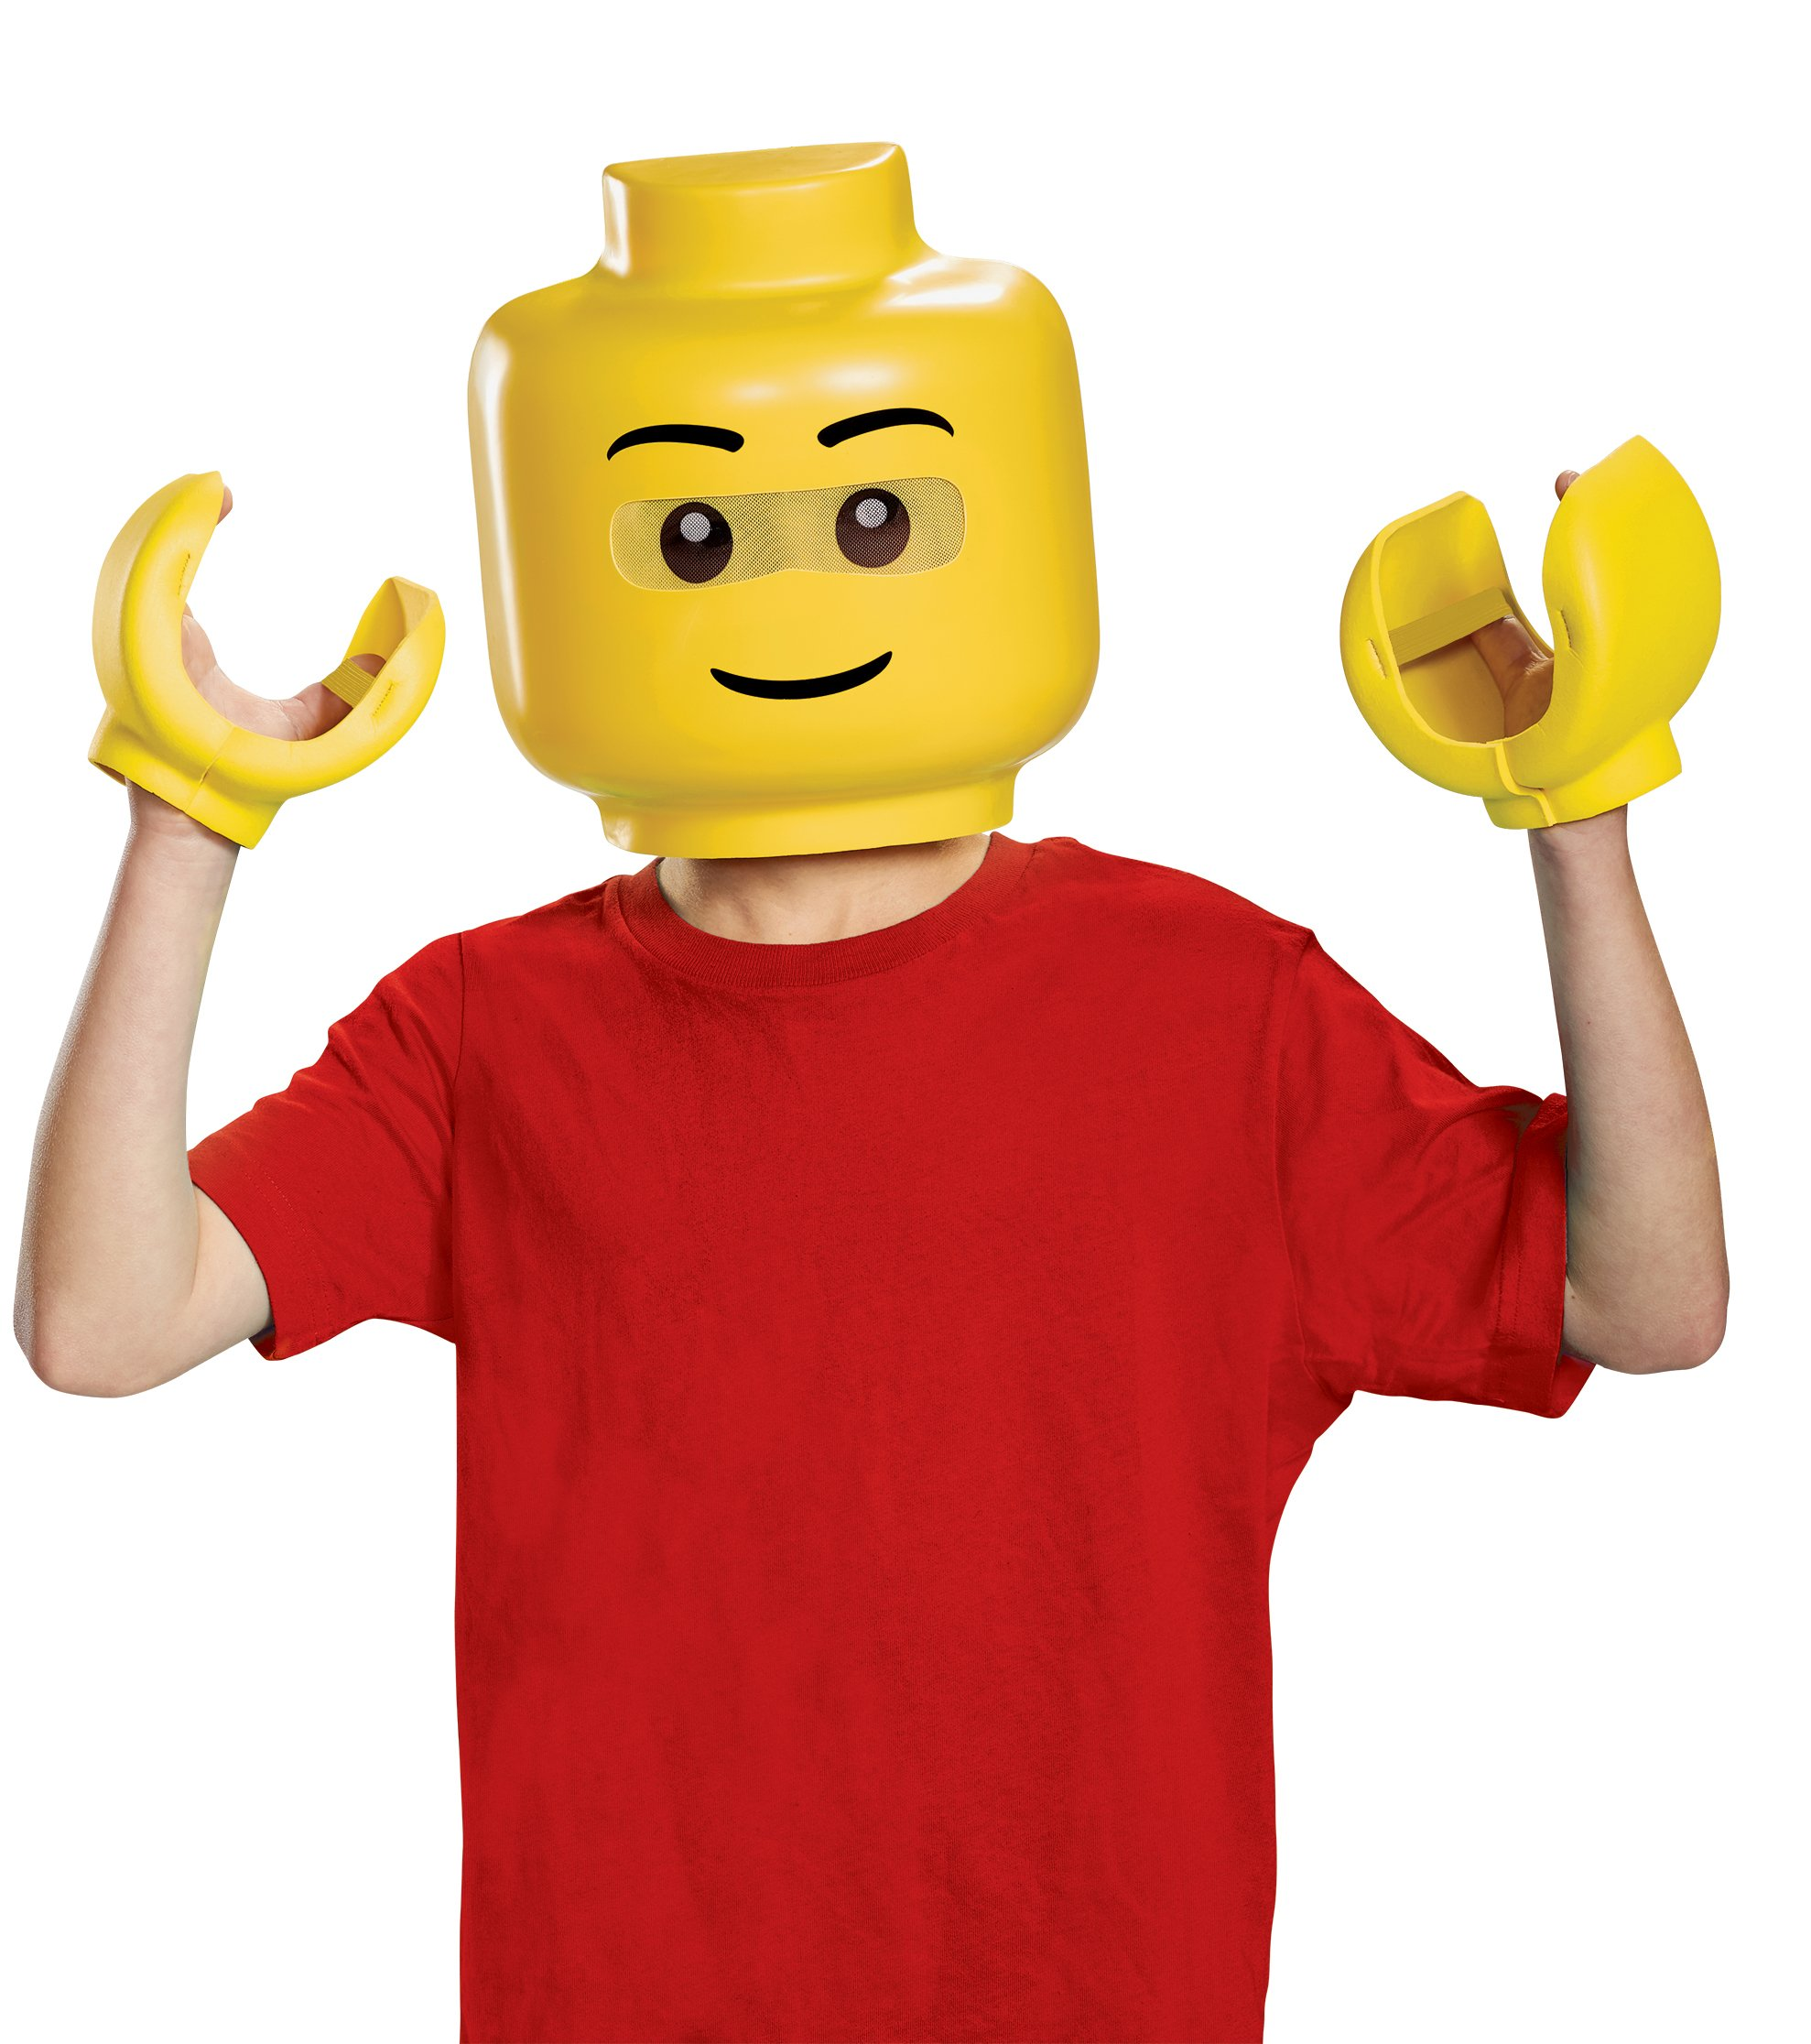 Disguise Lego Iconic & Hands Costume Kit, One Size Child